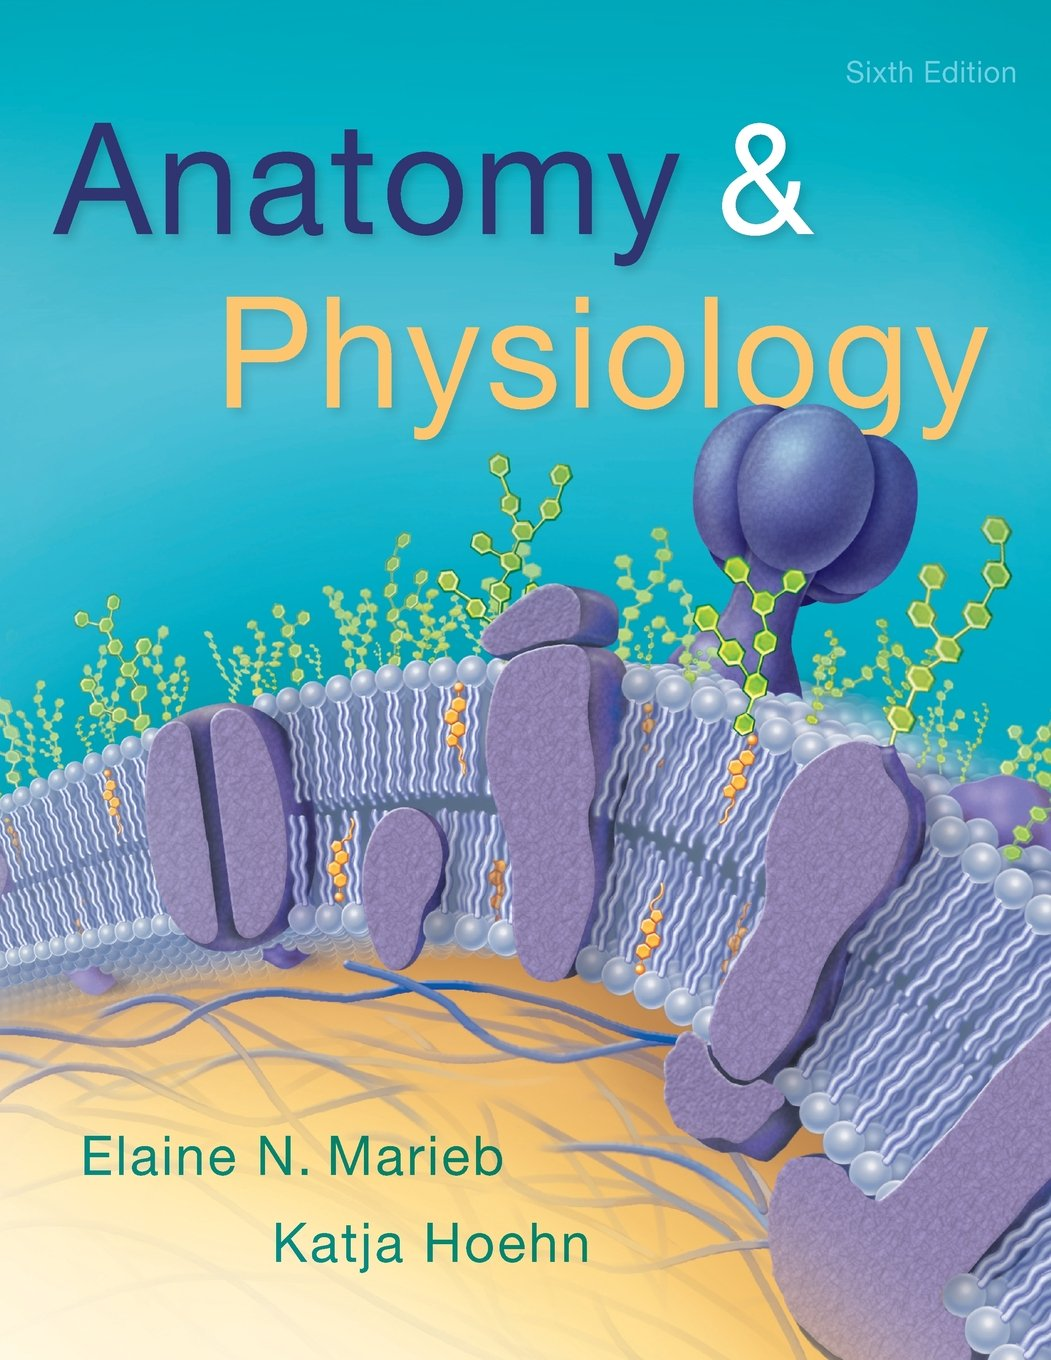 Dorable Marieb Anatomy And Physiology 6th Edition Embellecimiento ...